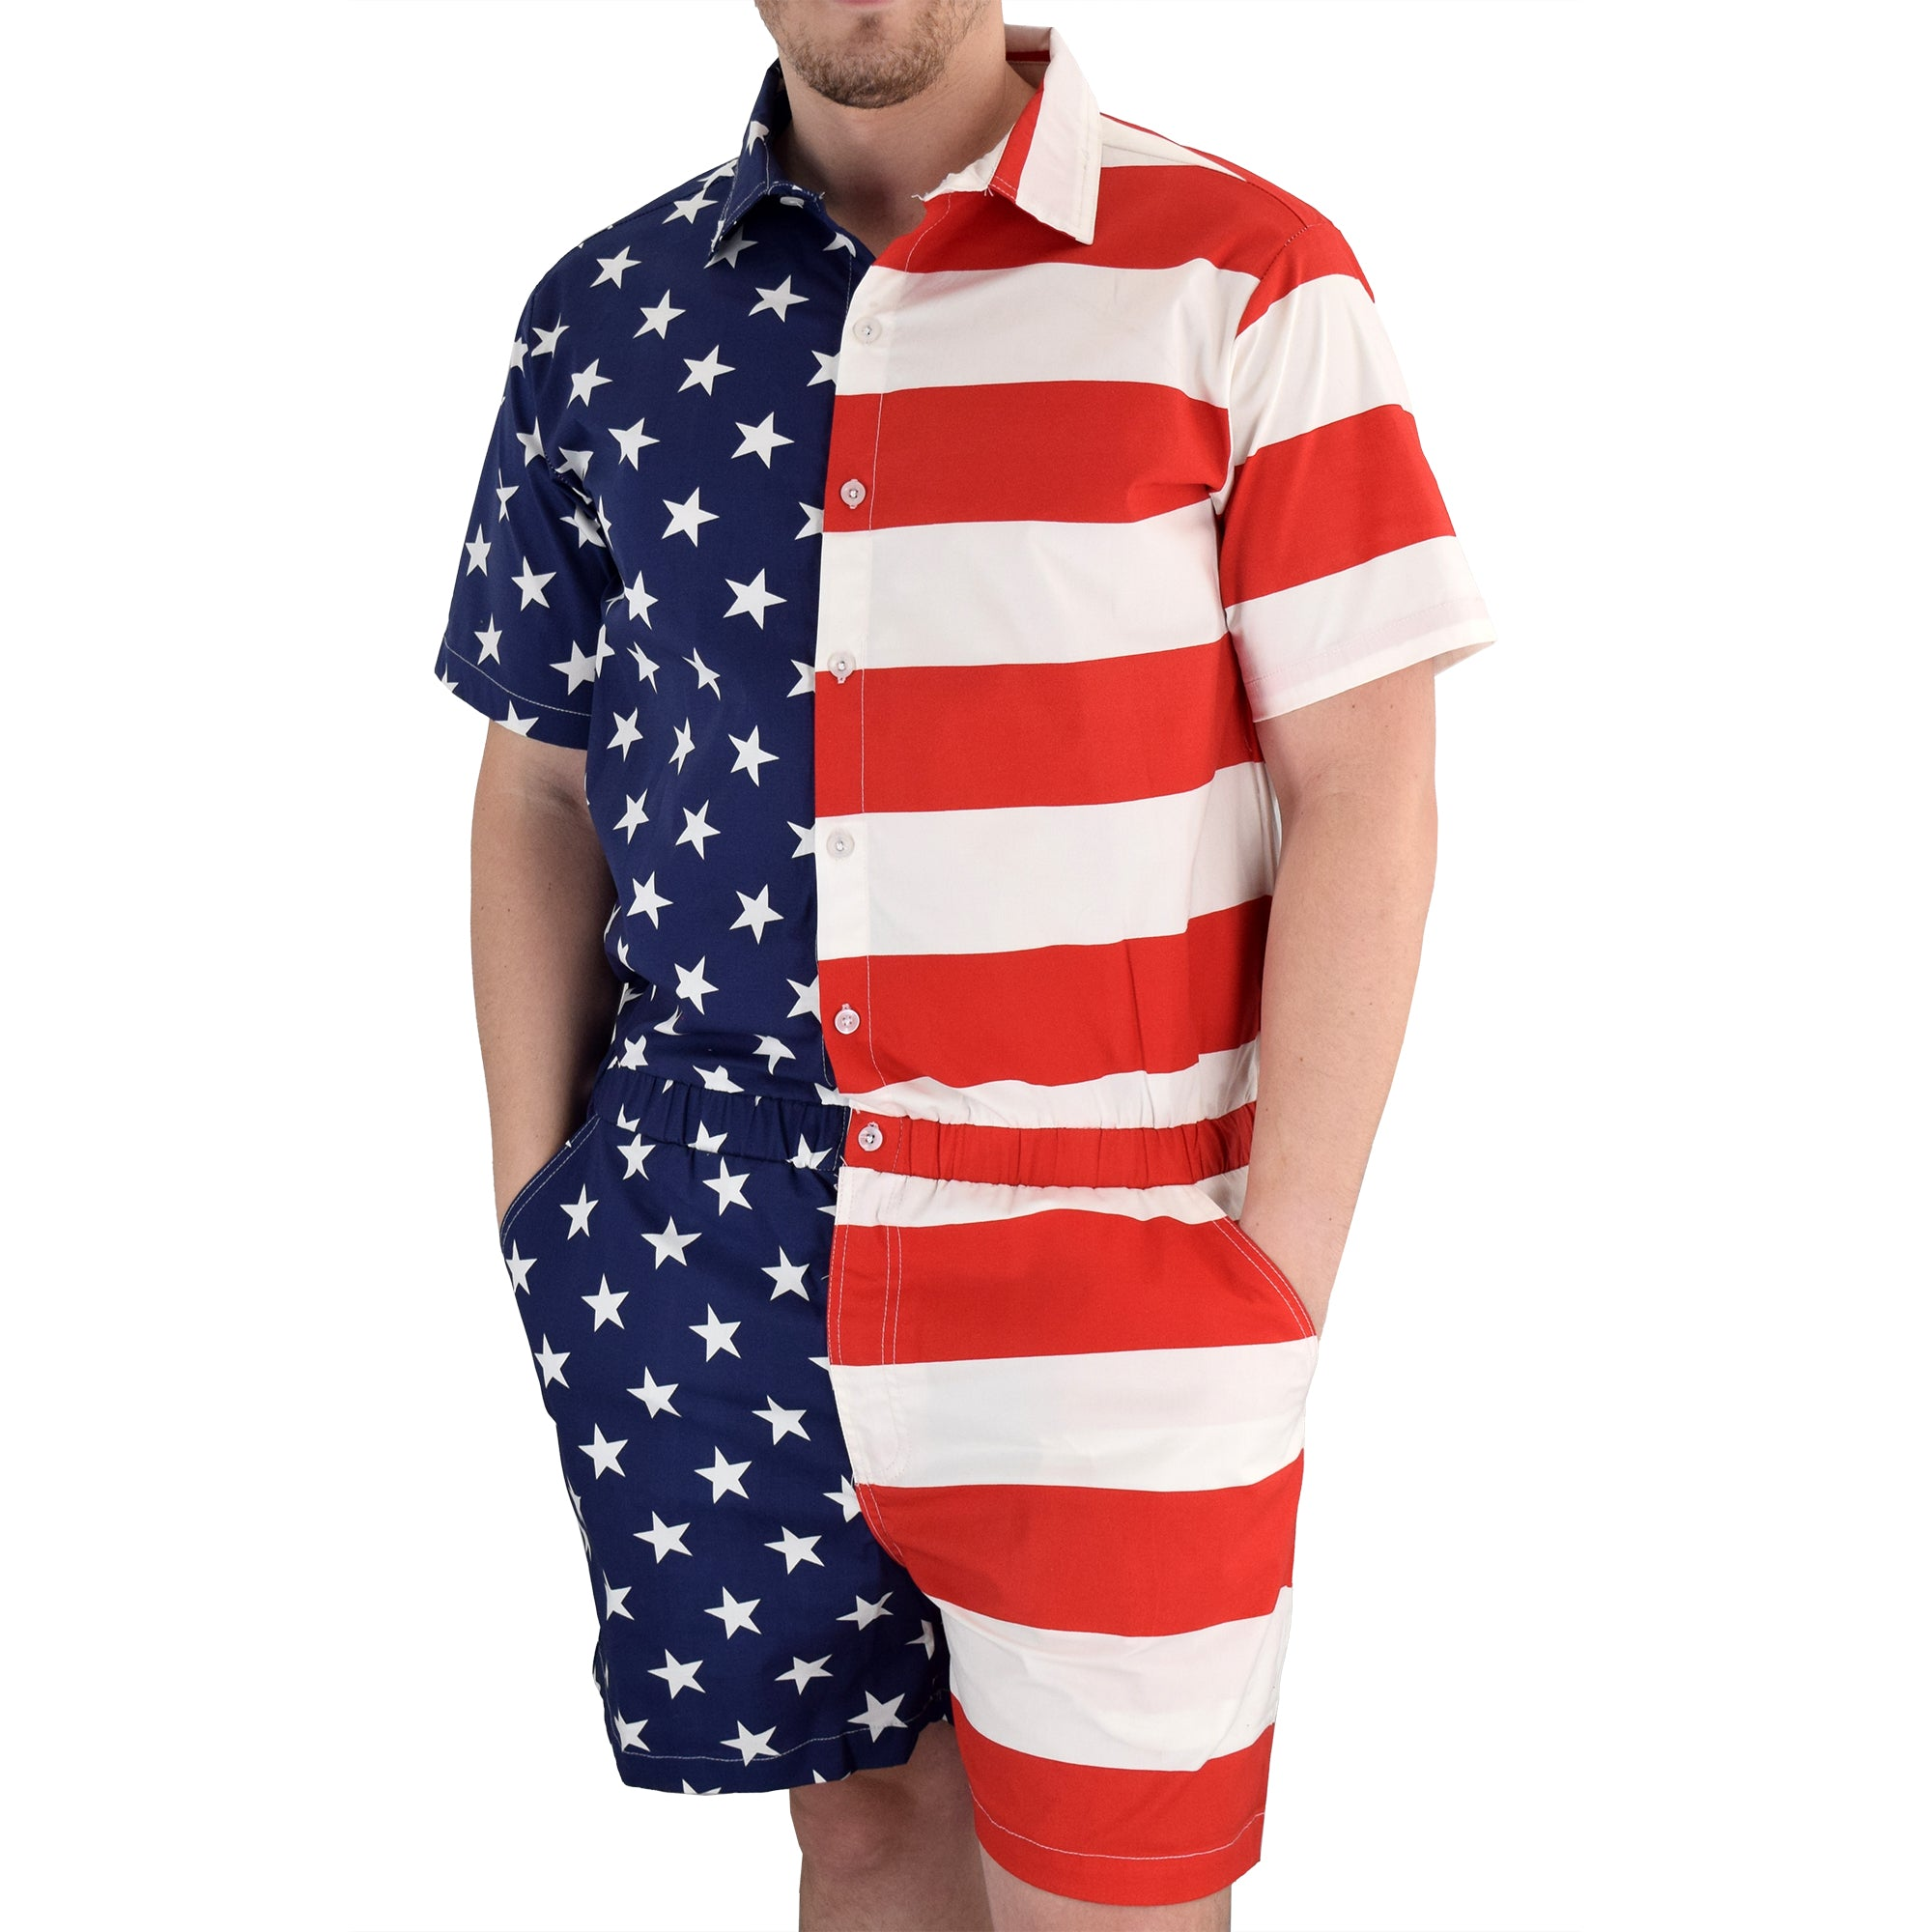 Mens american flag romper - the flag shirt